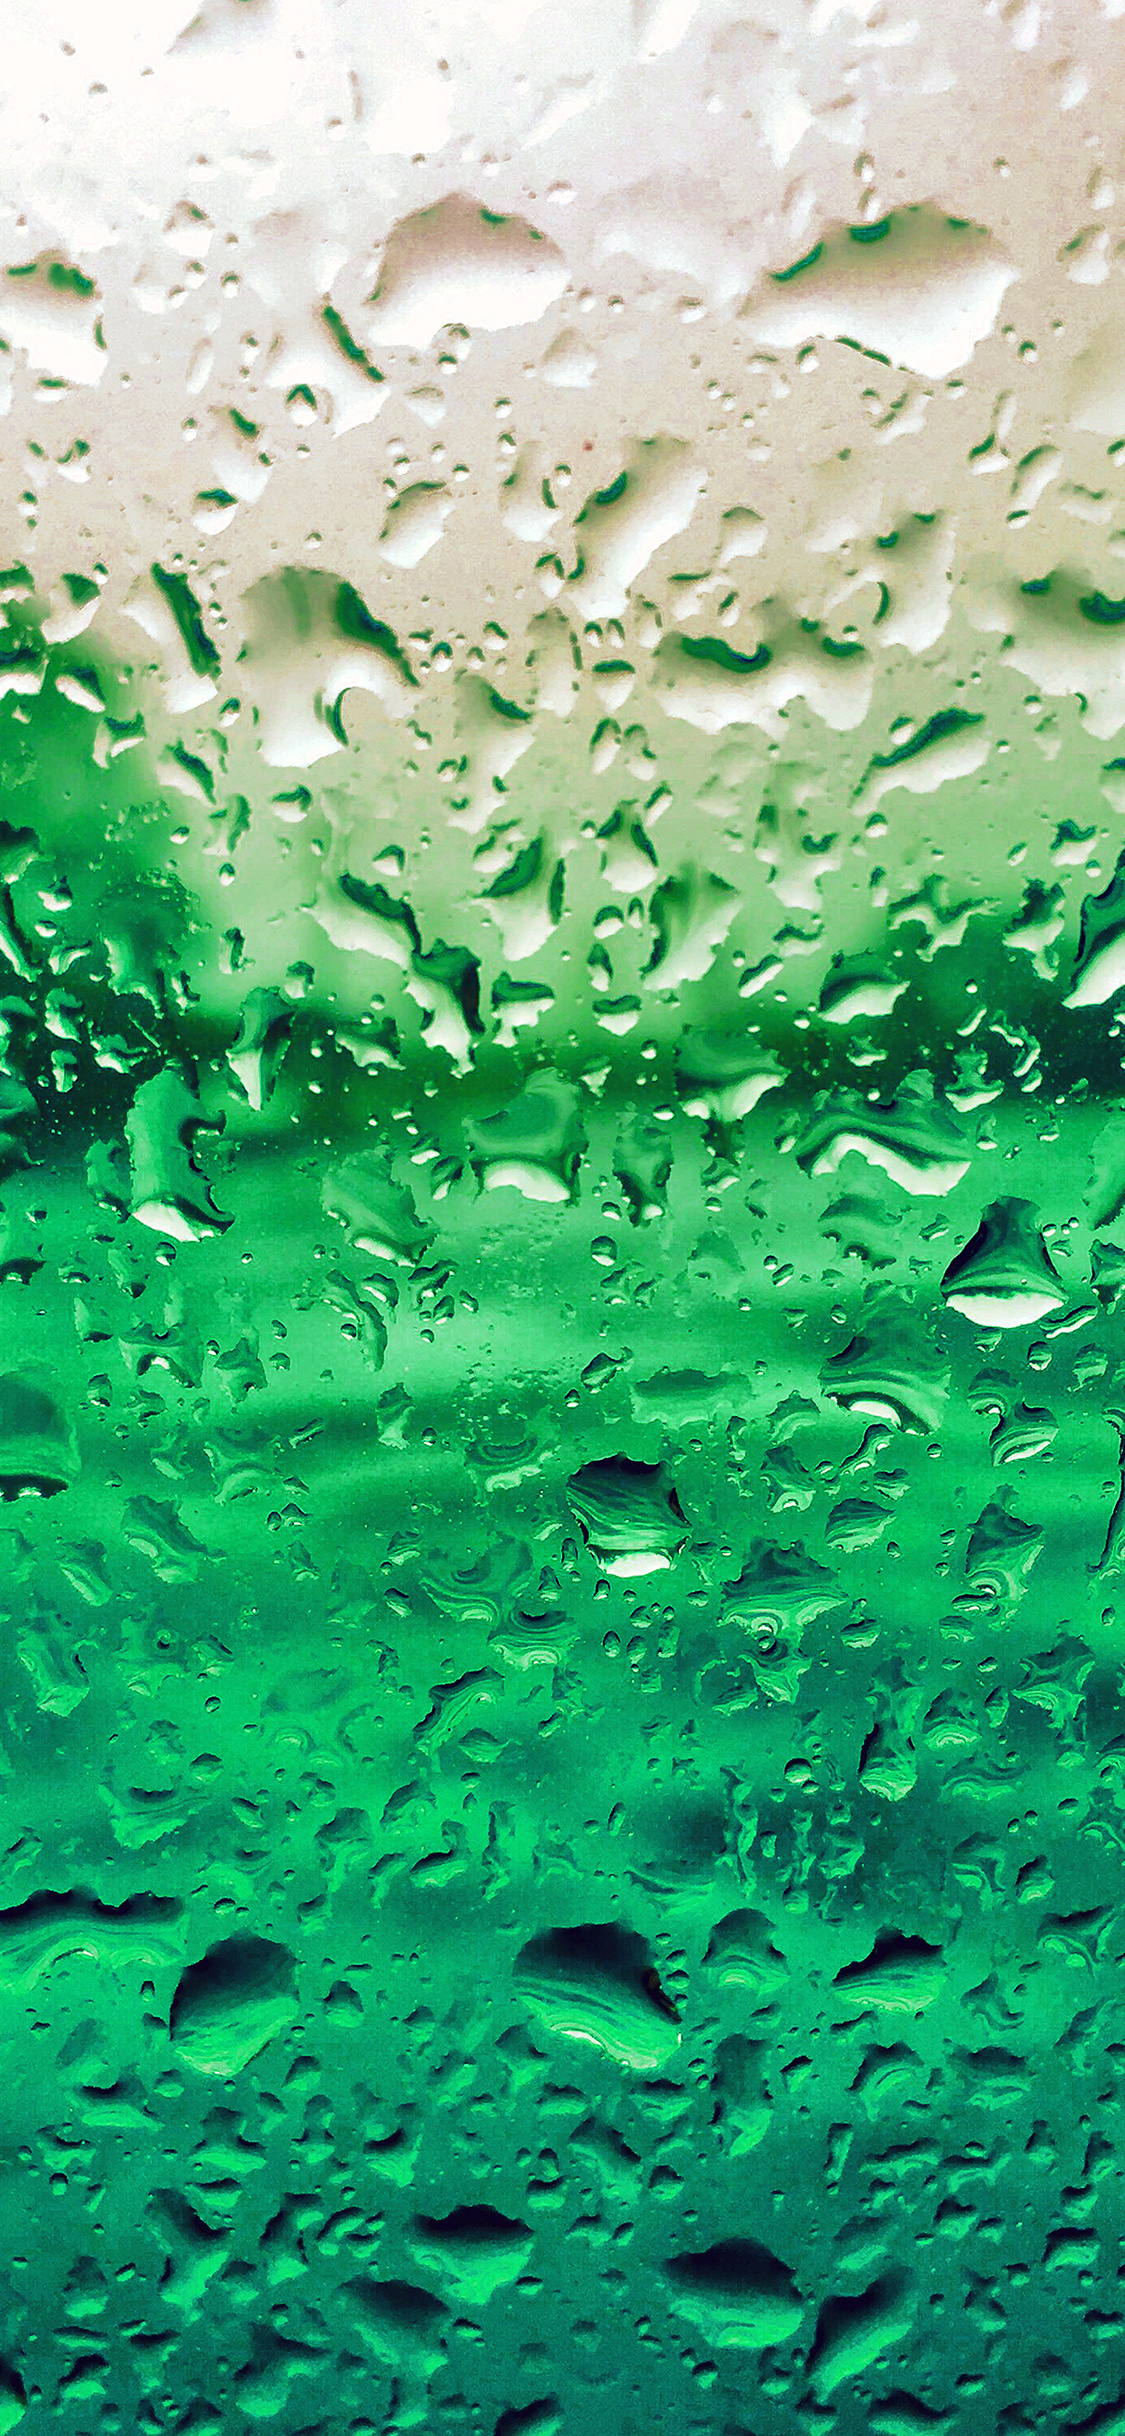 iPhoneXpapers.com-Apple-iPhone-wallpaper-vr71-rain-drop-window-green-pattern